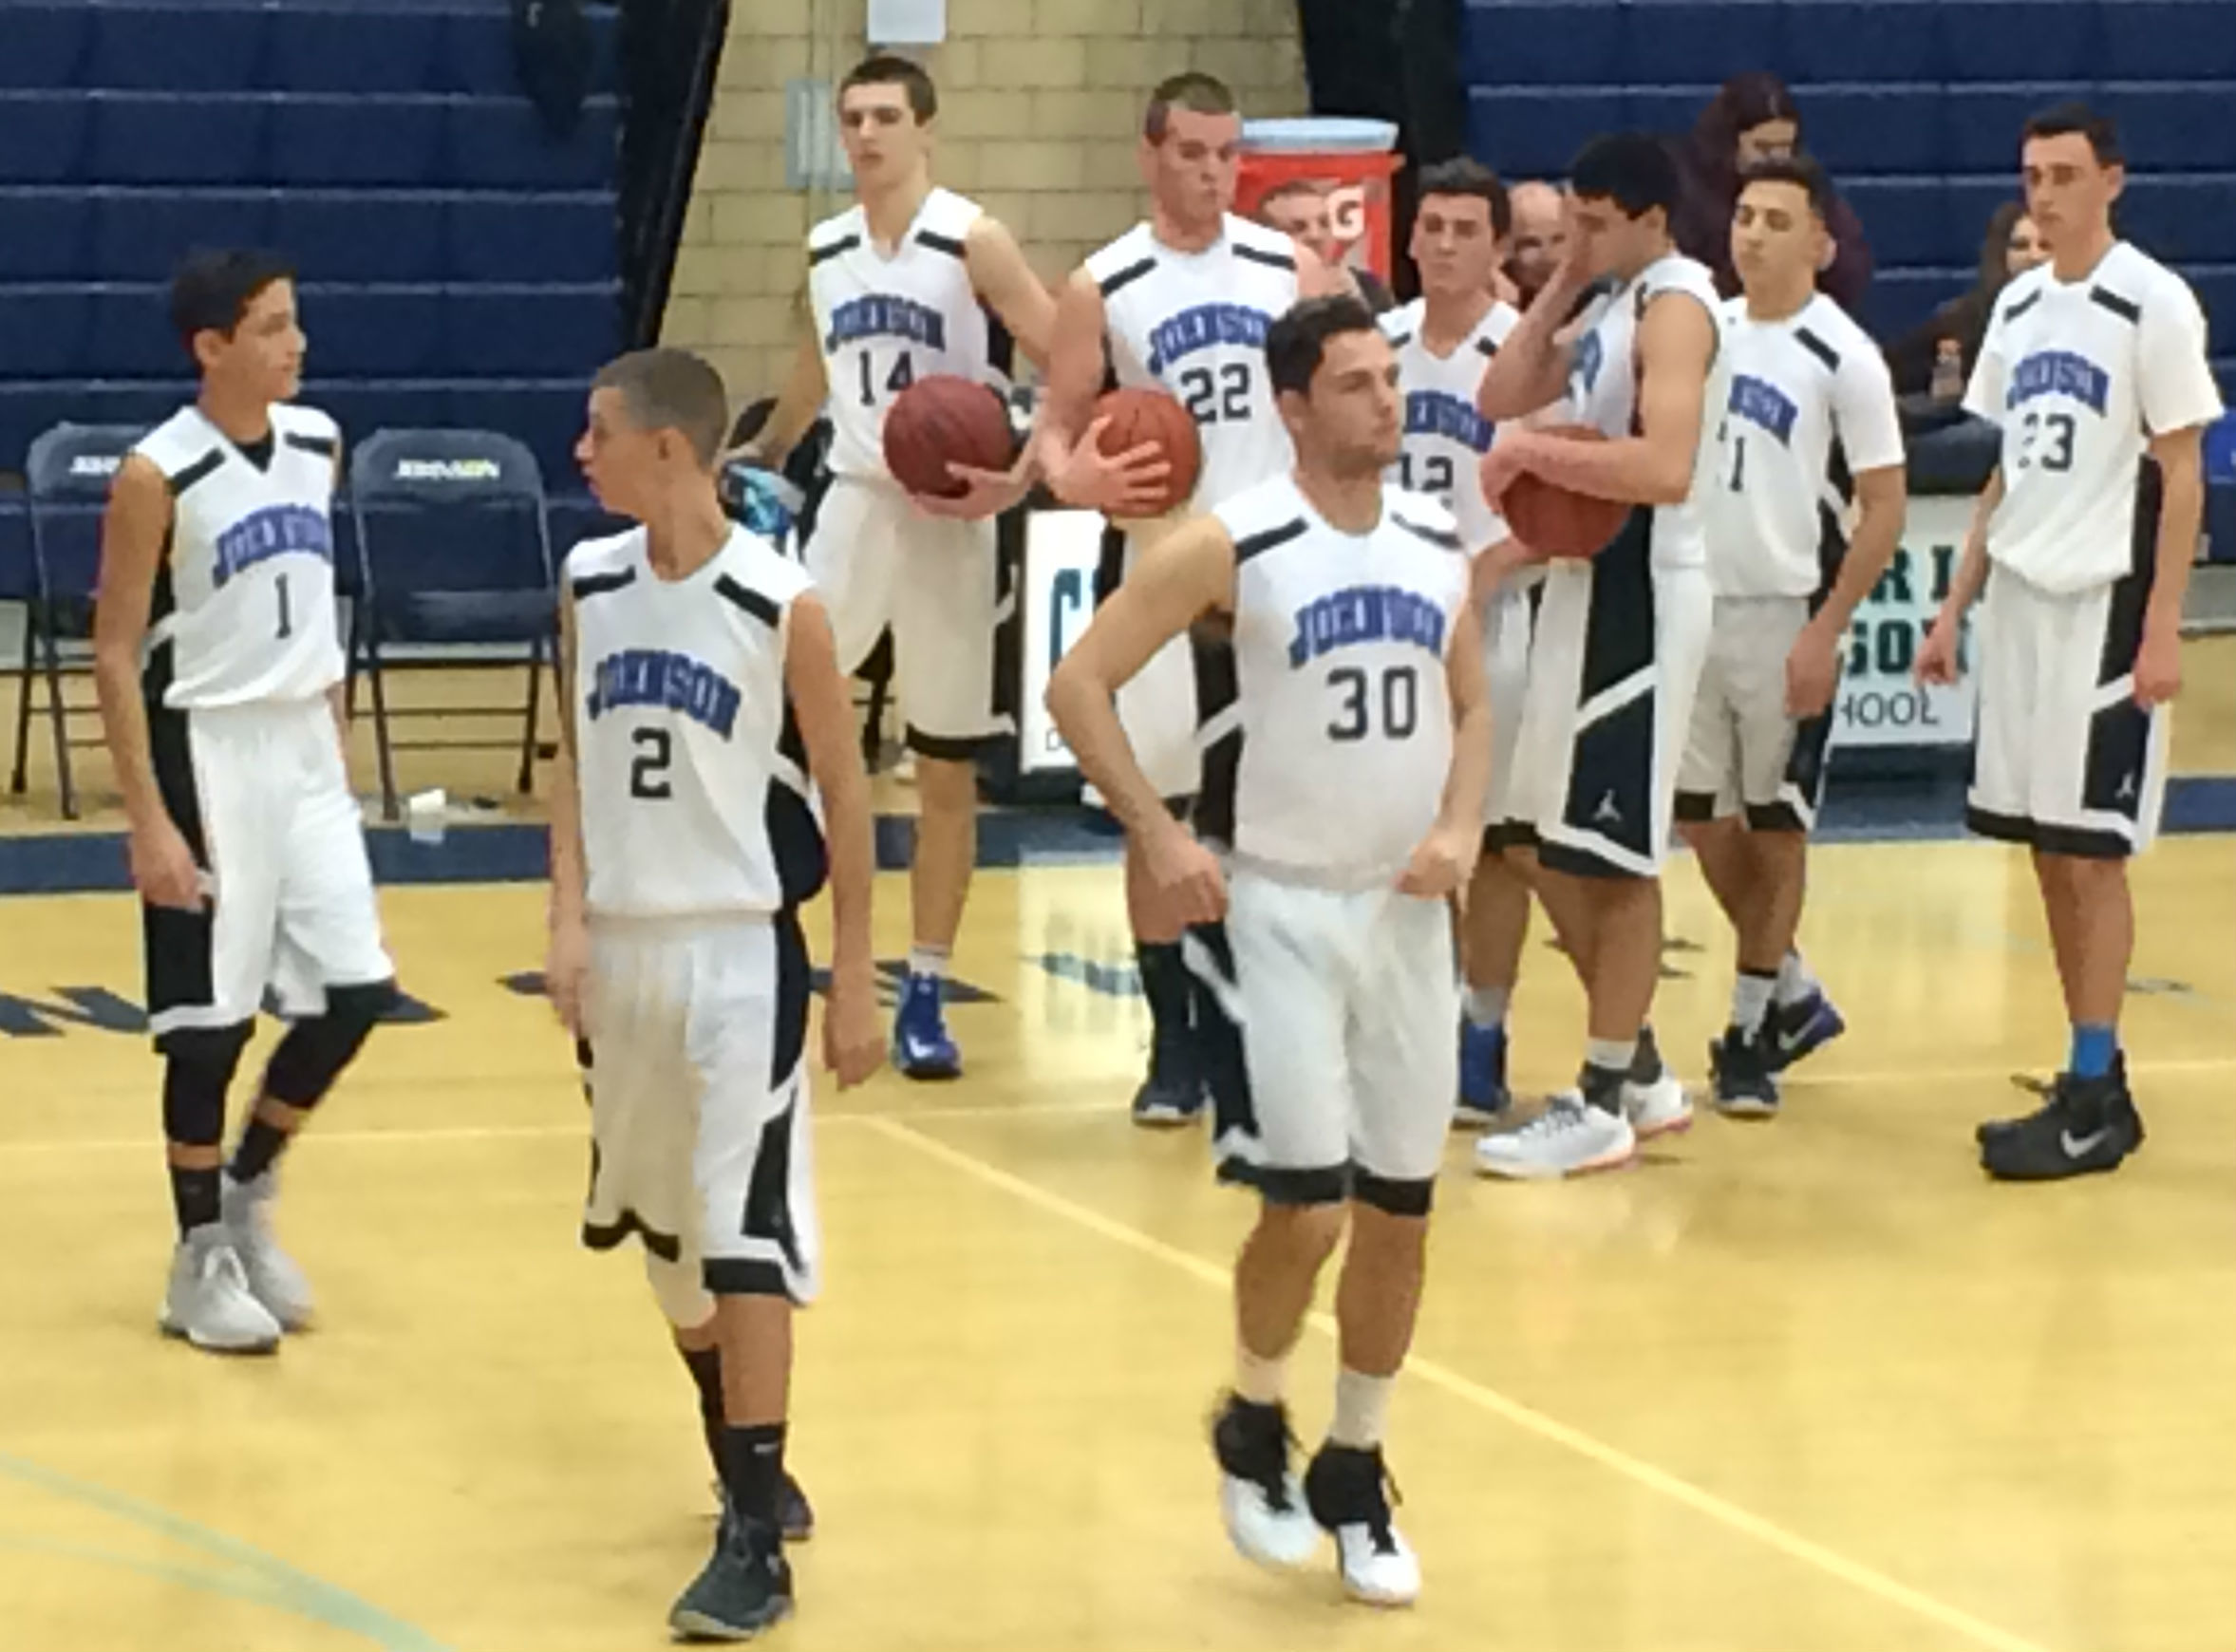 f863a0570f290df469aa_ALJ_boys_basketball_2015.jpg